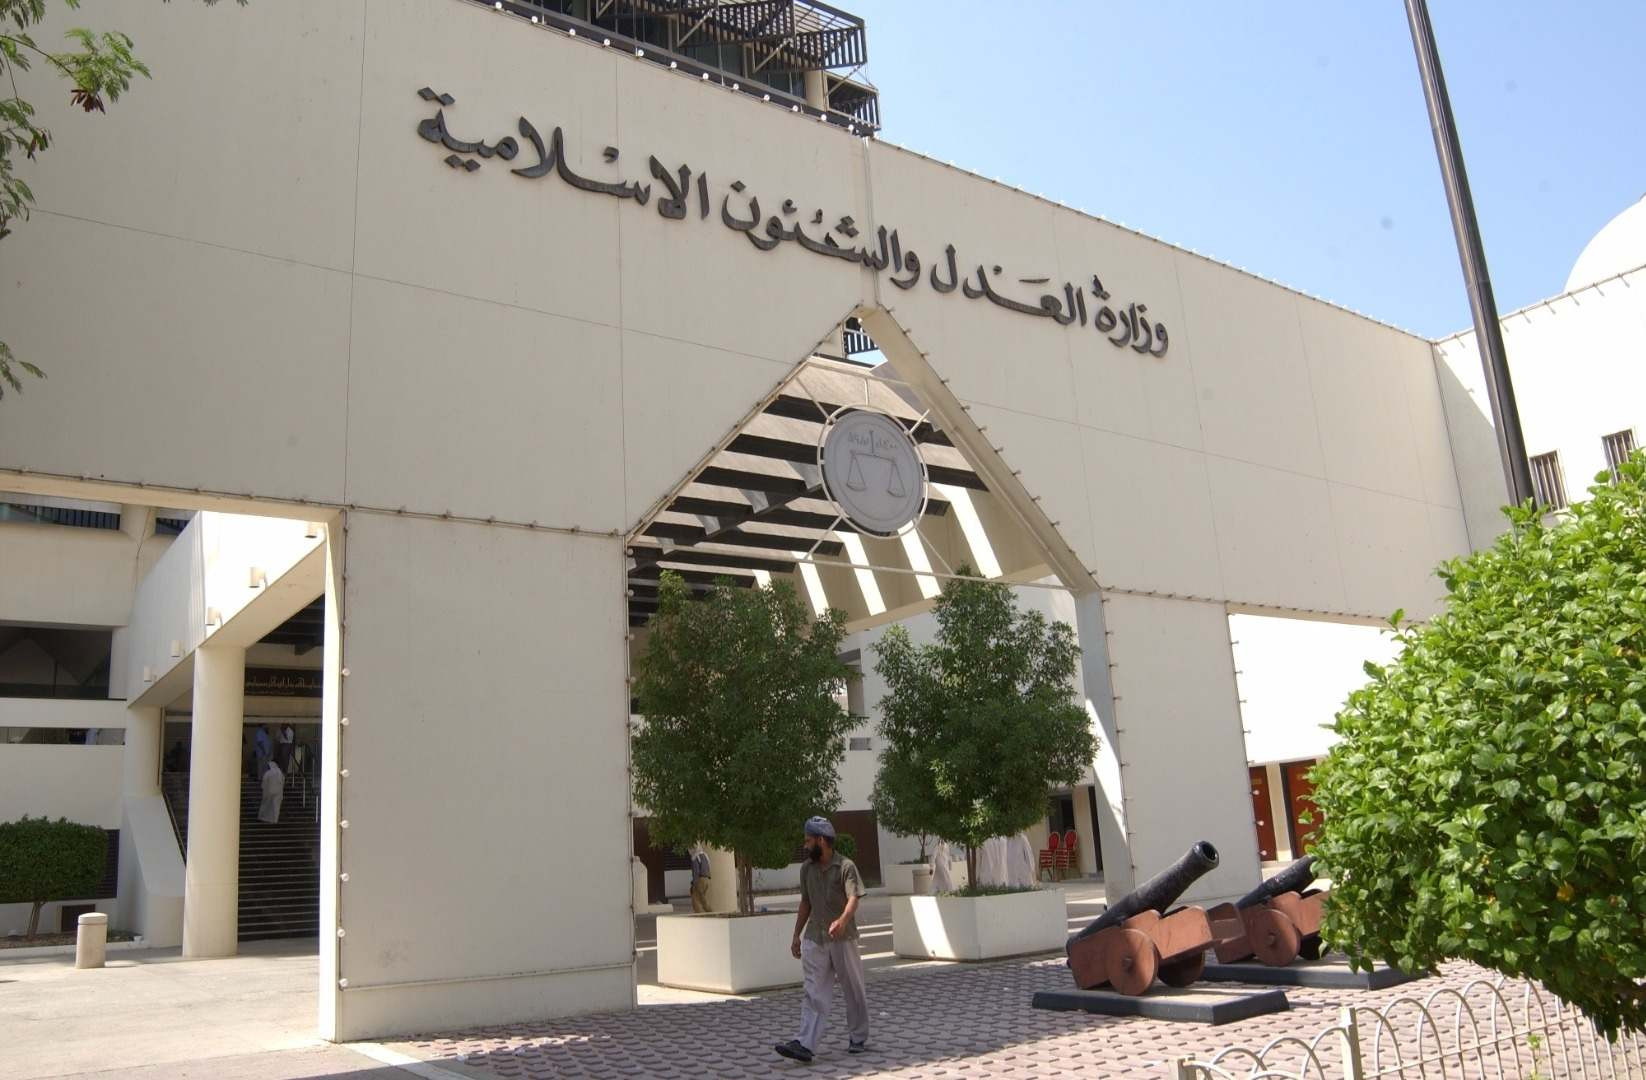 An amendment to the judgments on the detainees of Square of Redemption